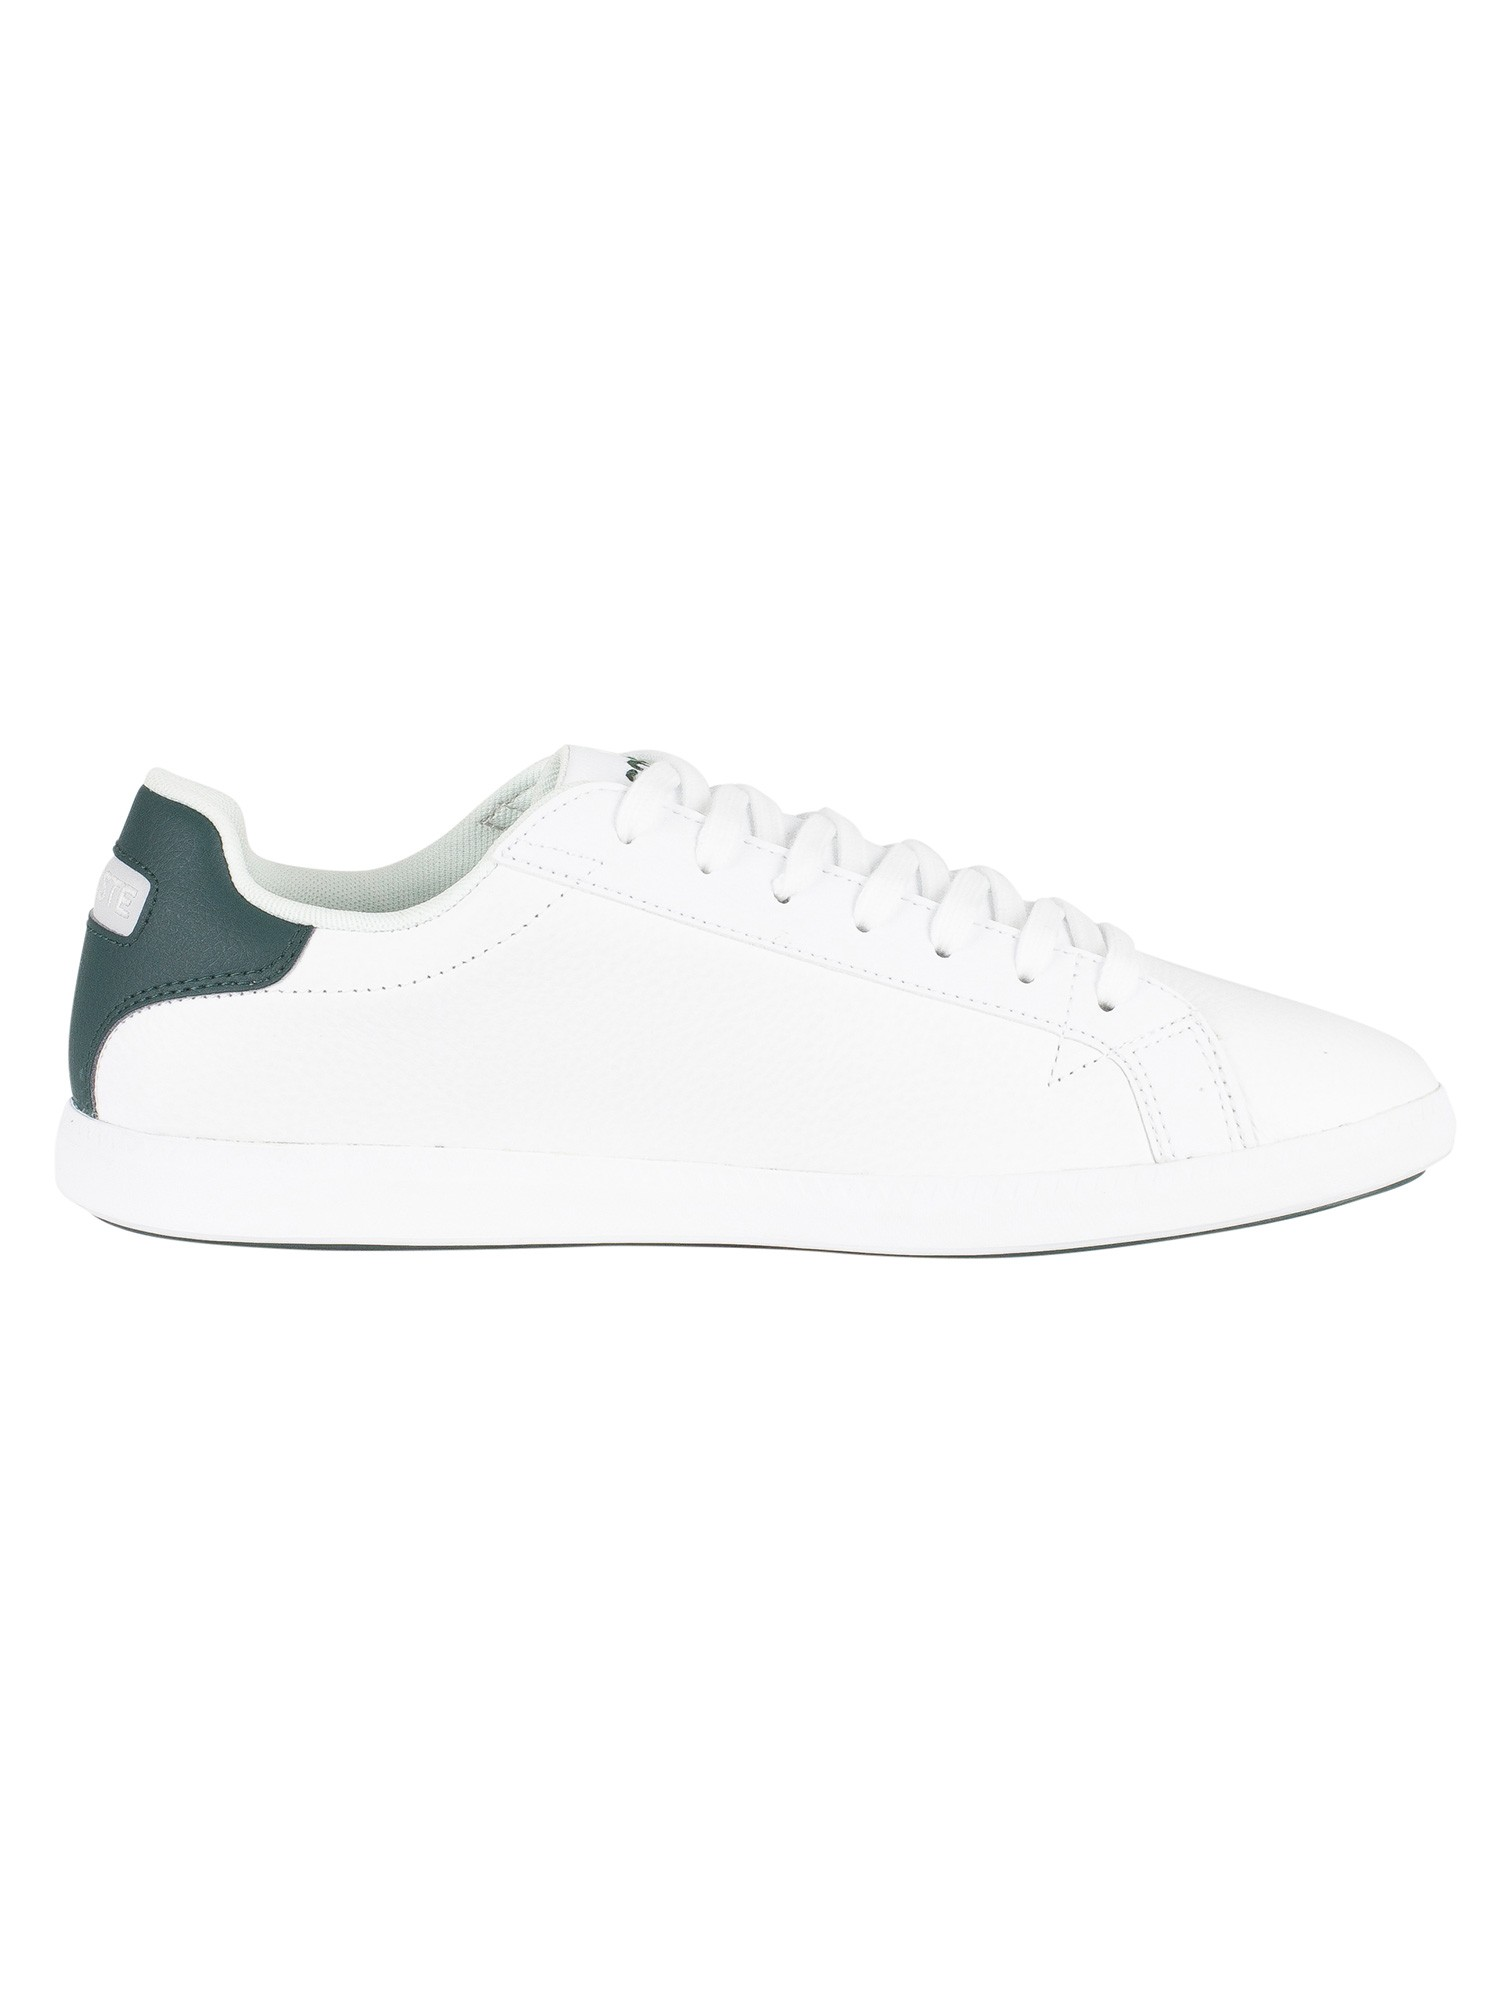 Lacoste Graduate LCR3 118 1 SPM Leather Trainers - White/Dark Green